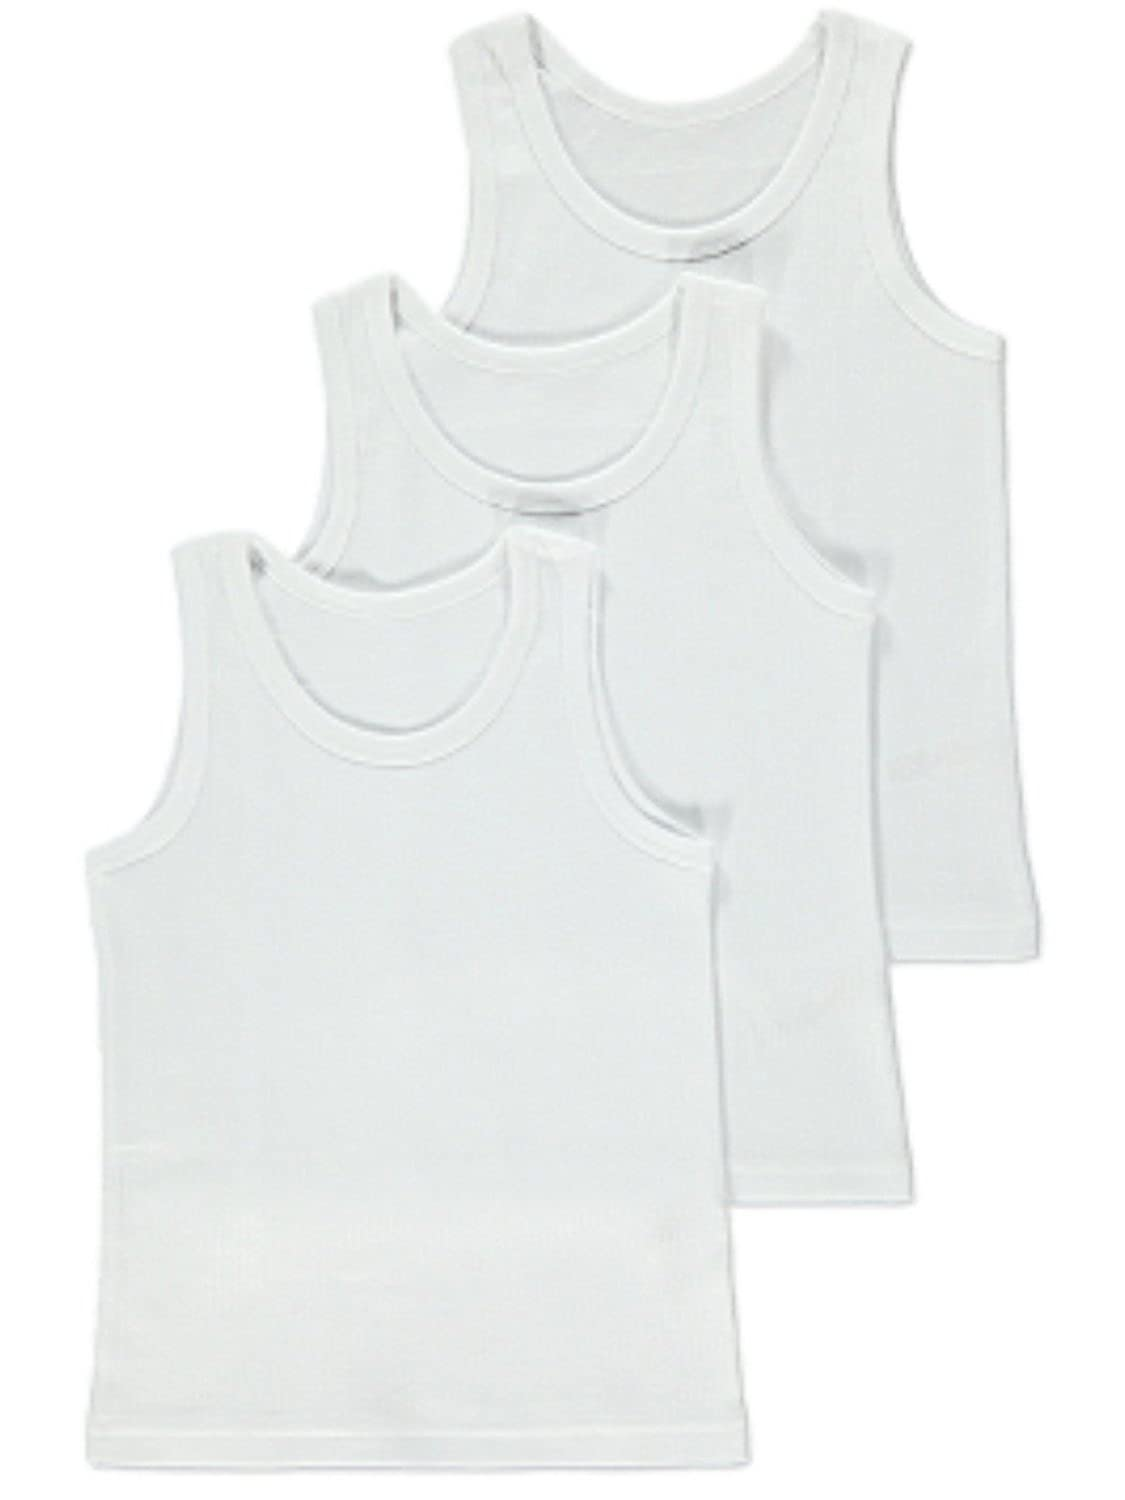 3 Pack Boys 100% Cotton White Vests Singlets Top Sizes 2-8 Years